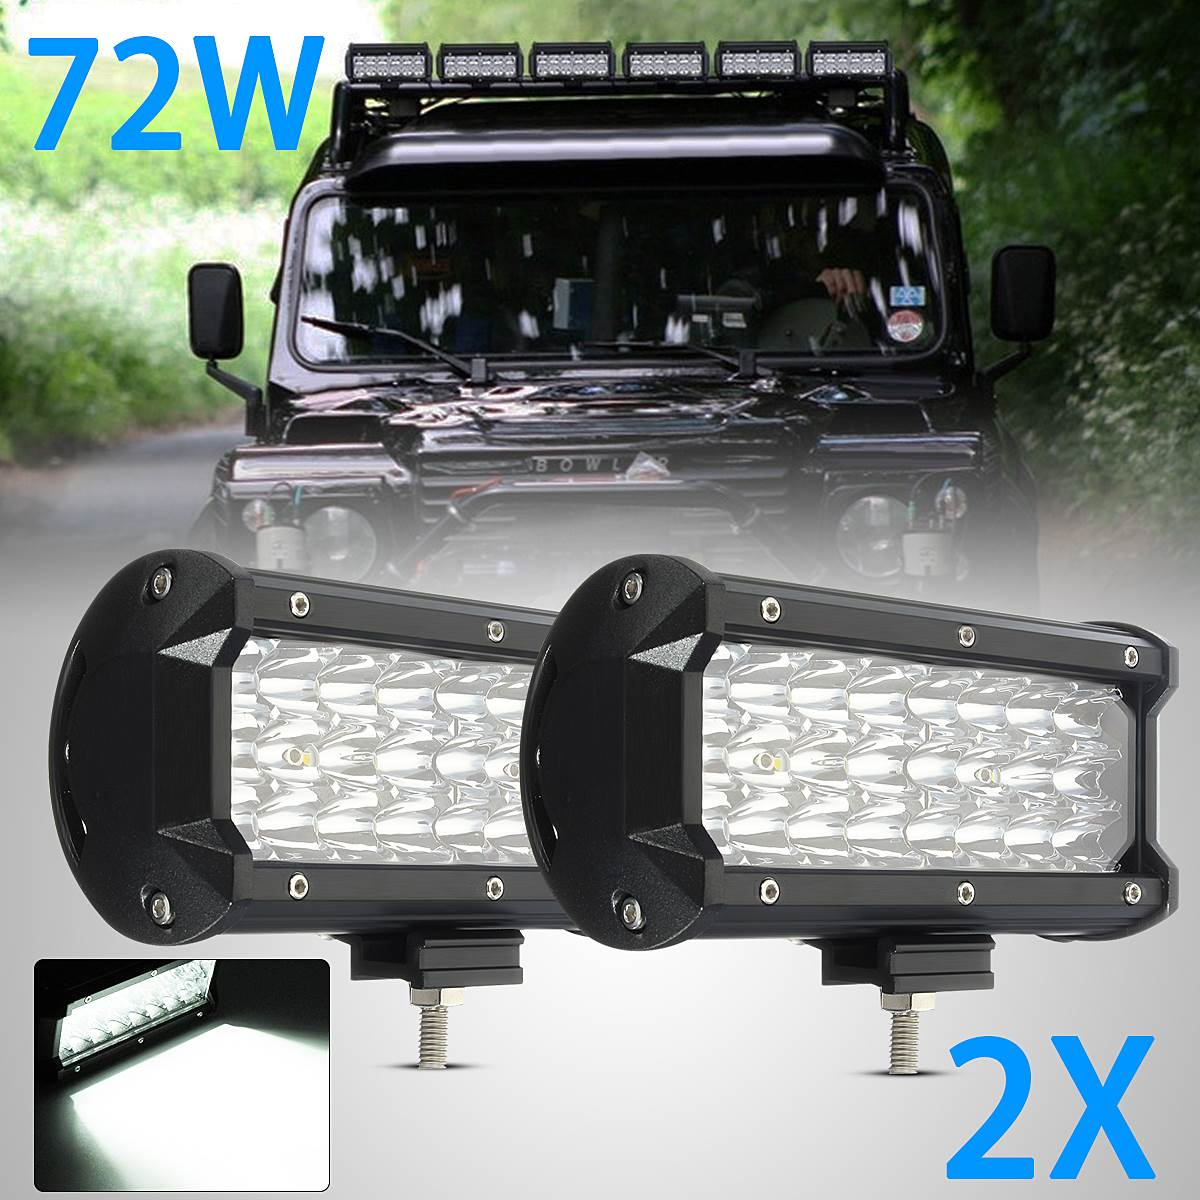 2X 12Inch 72W 24LED Car light Led Lamp Spotlight Work Lihgt for off-road vehicles, trucks, motorcycles, automobiles 9-32V